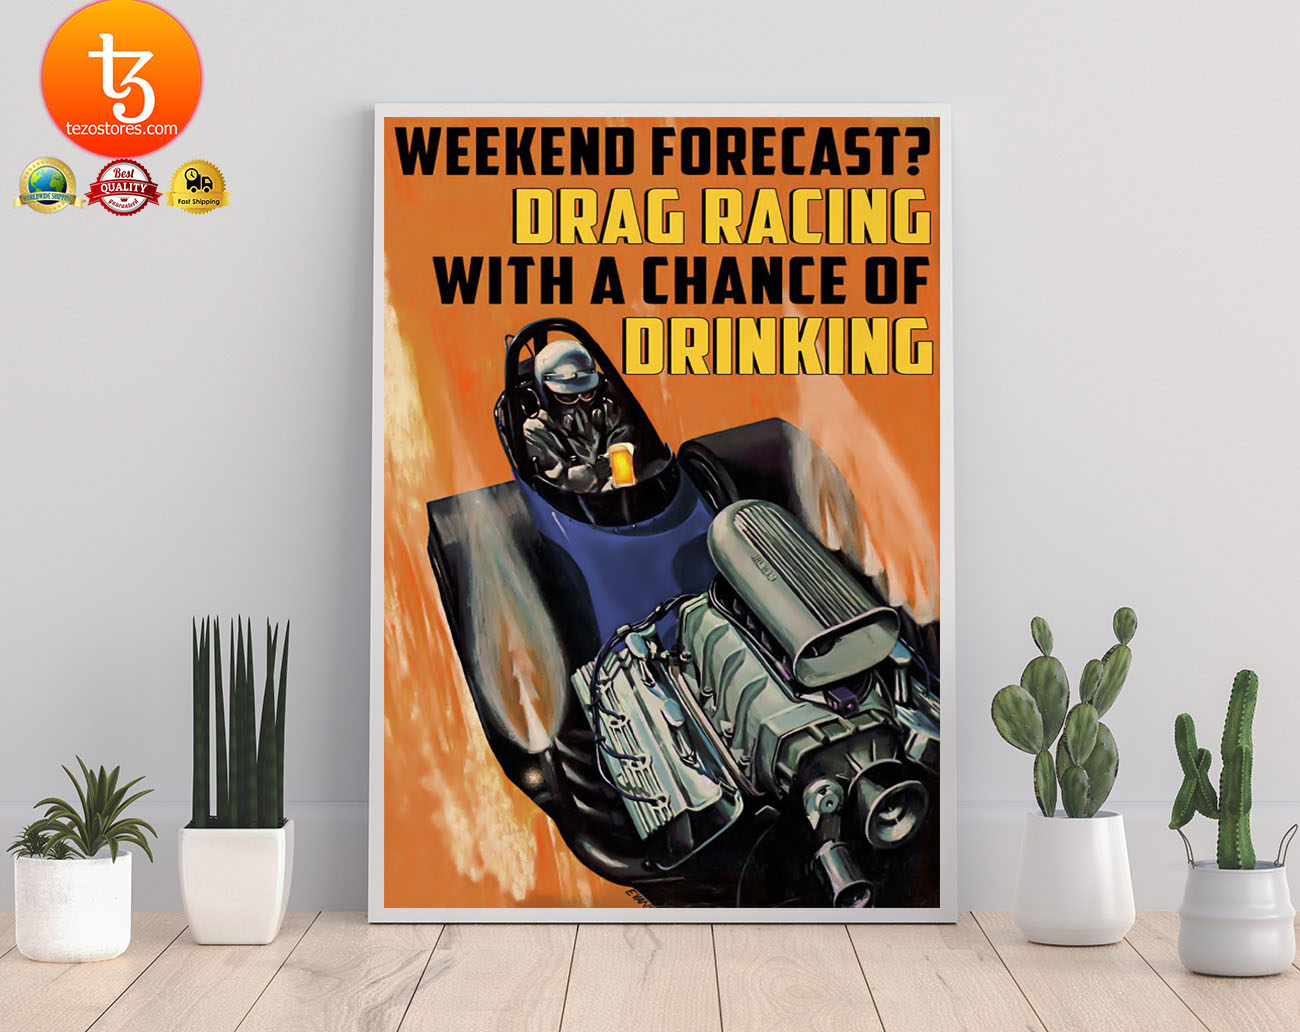 Weekend forecast drag racing with a chance of drinking poster 21